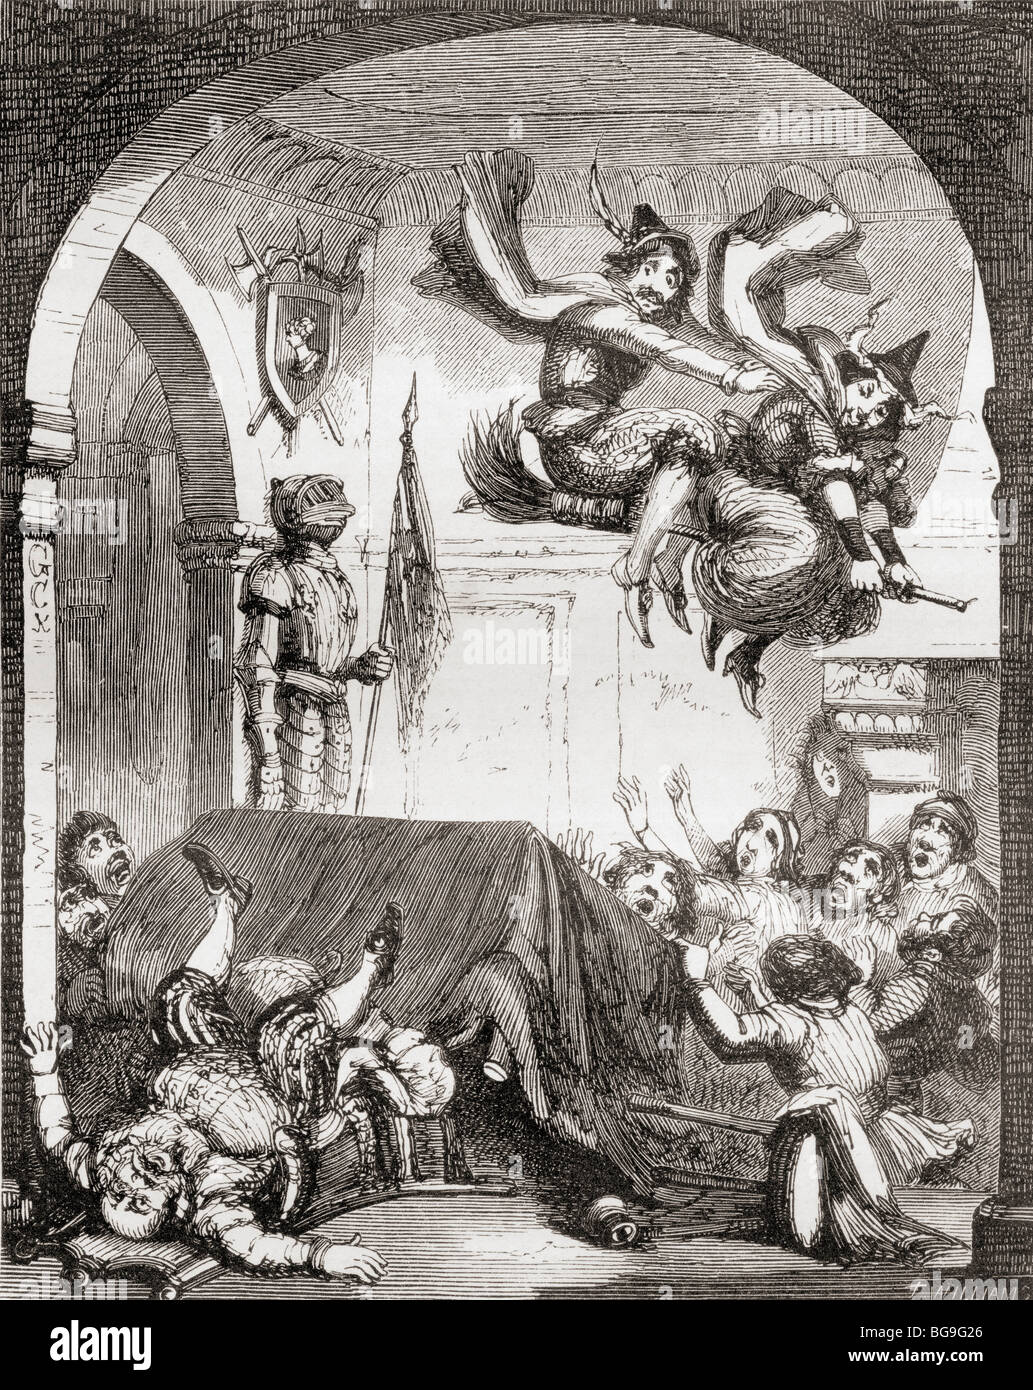 Illustration by George Cruikshank to the poem The Witches Frolic. - Stock Image